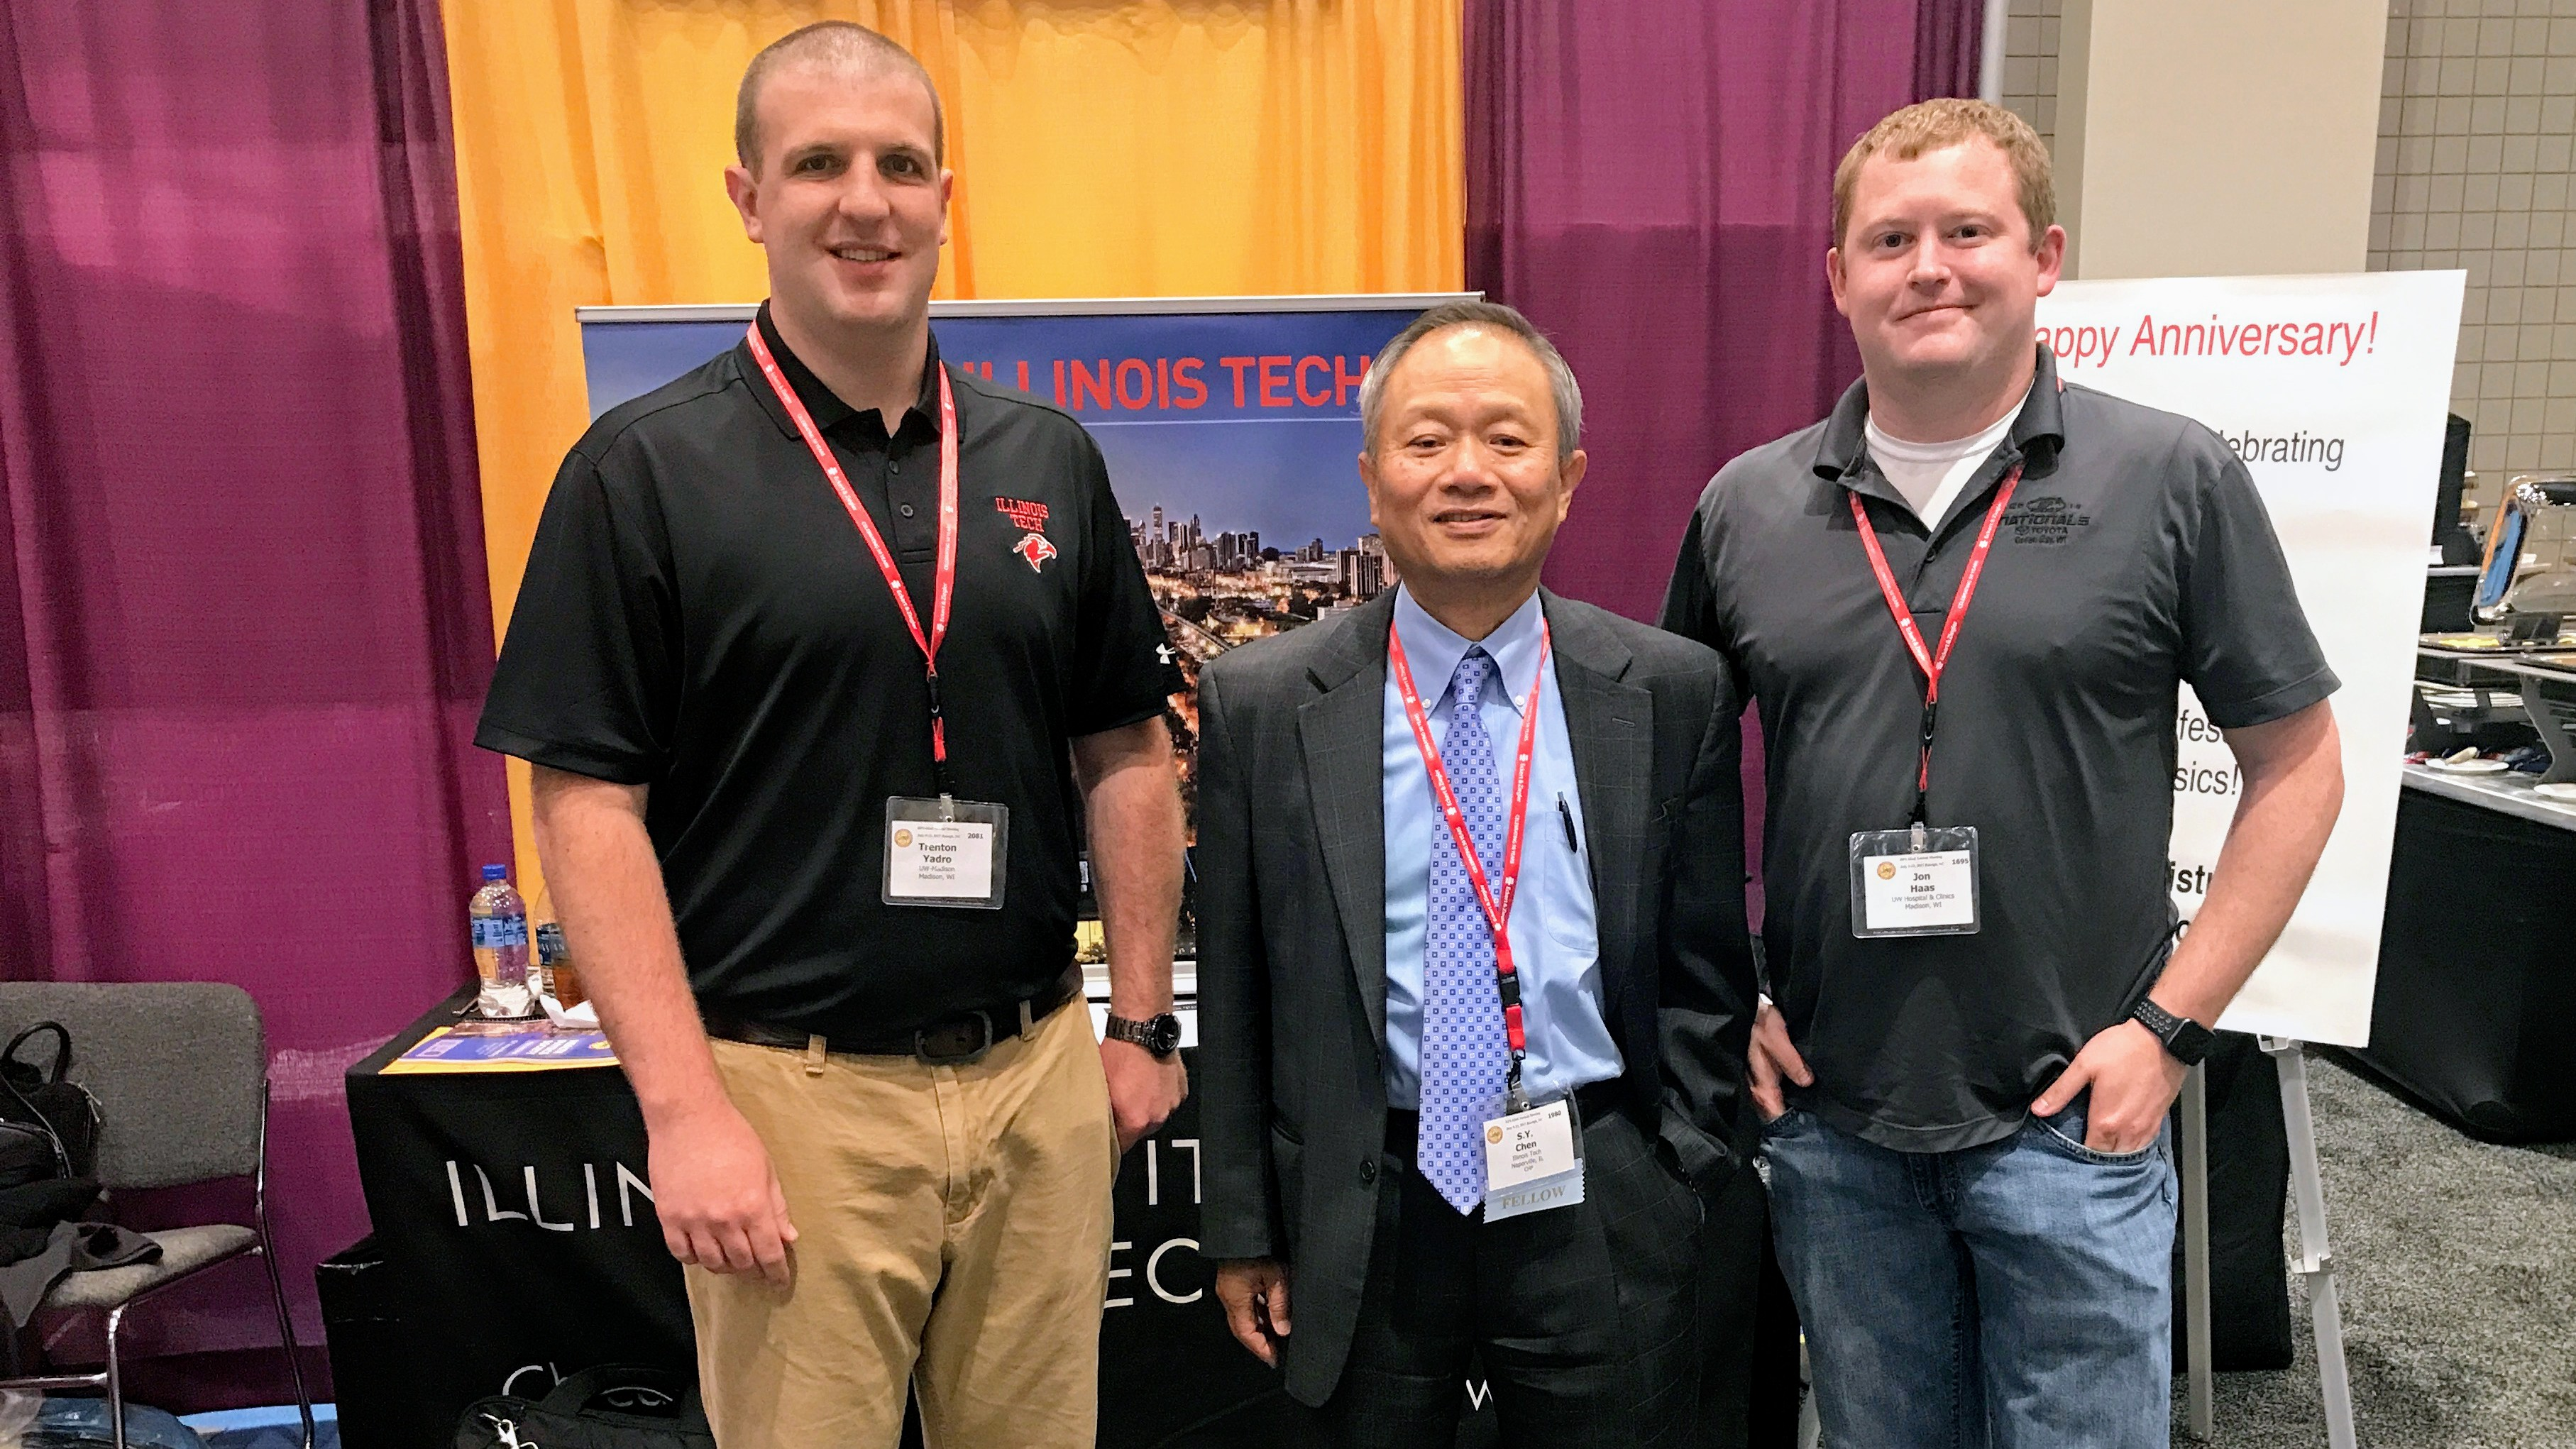 Trenton Yadro, S.Y. Chen, and Jon Haas at the 2017 Health Physics Society Meeting in Raleigh, NC.